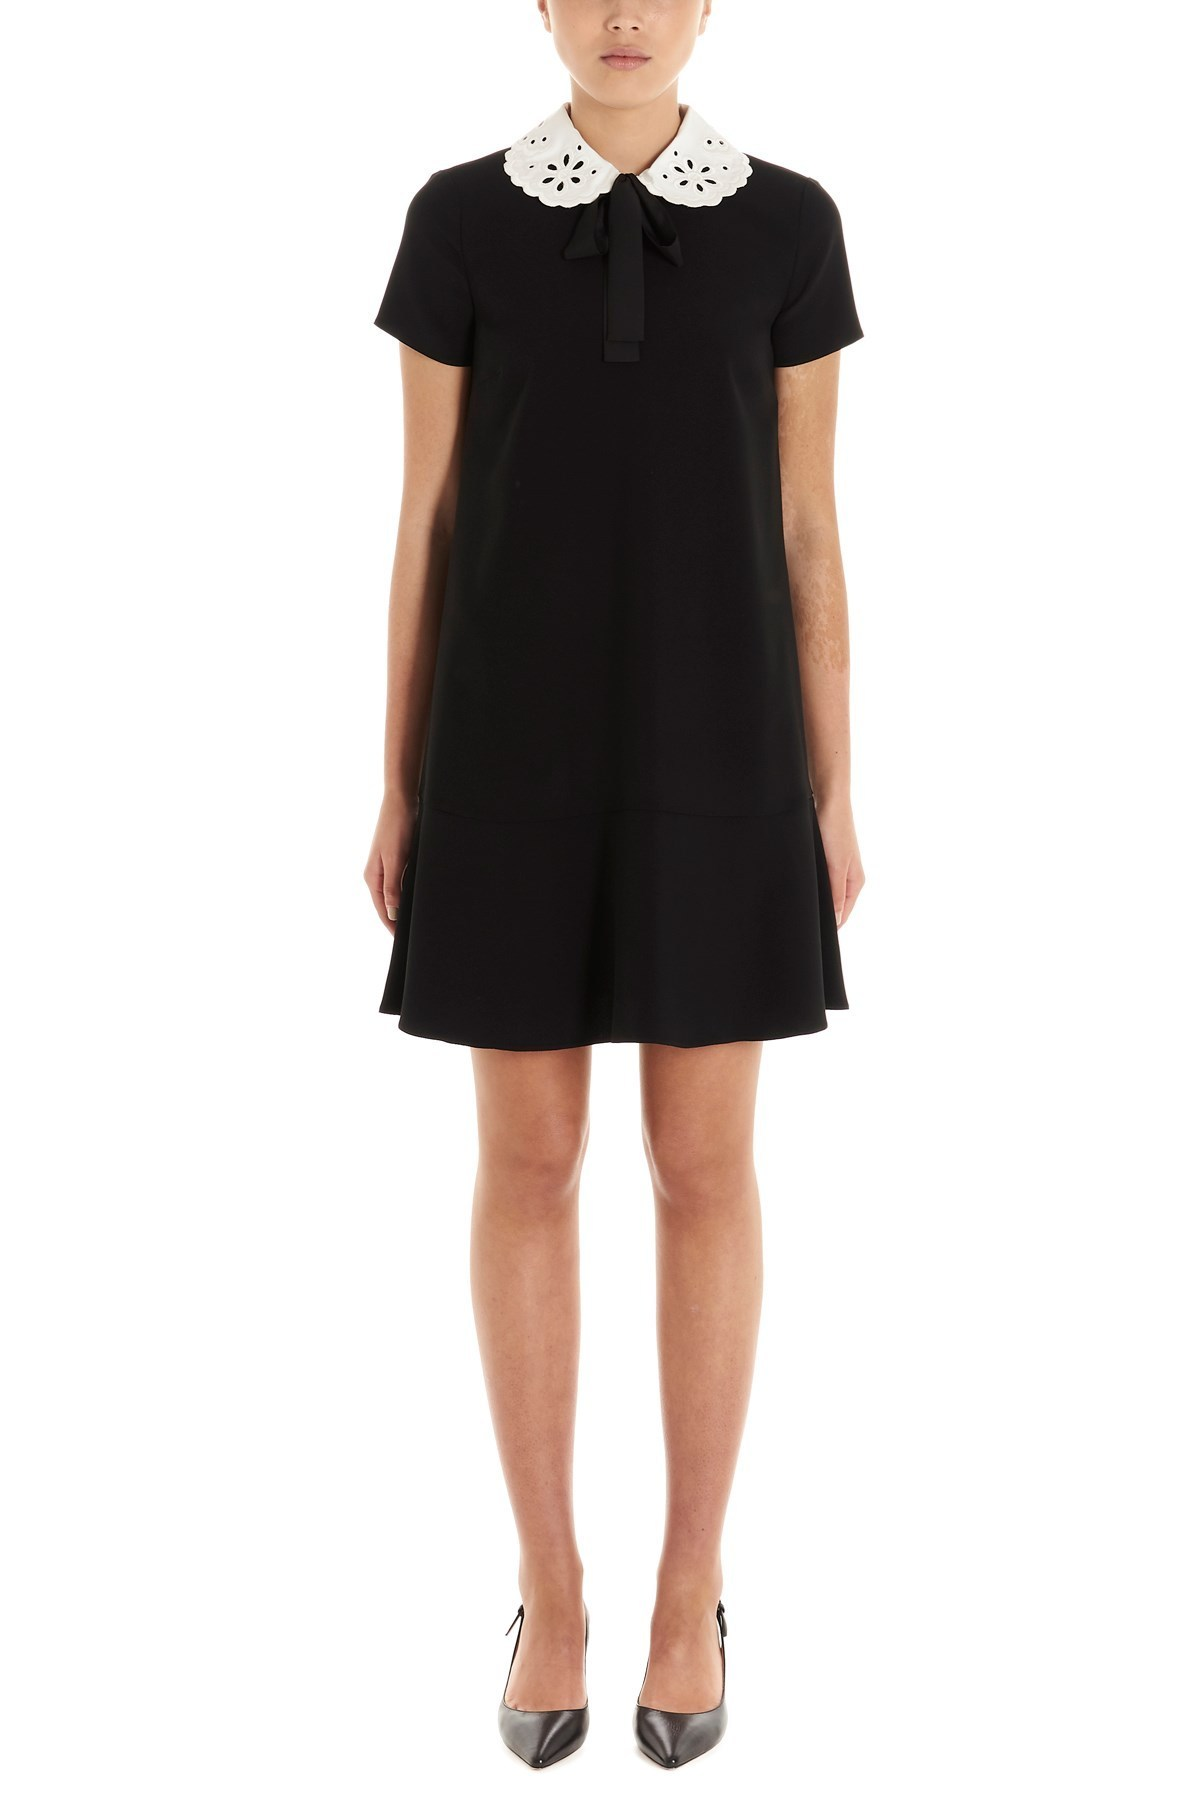 shop red valentino clothing